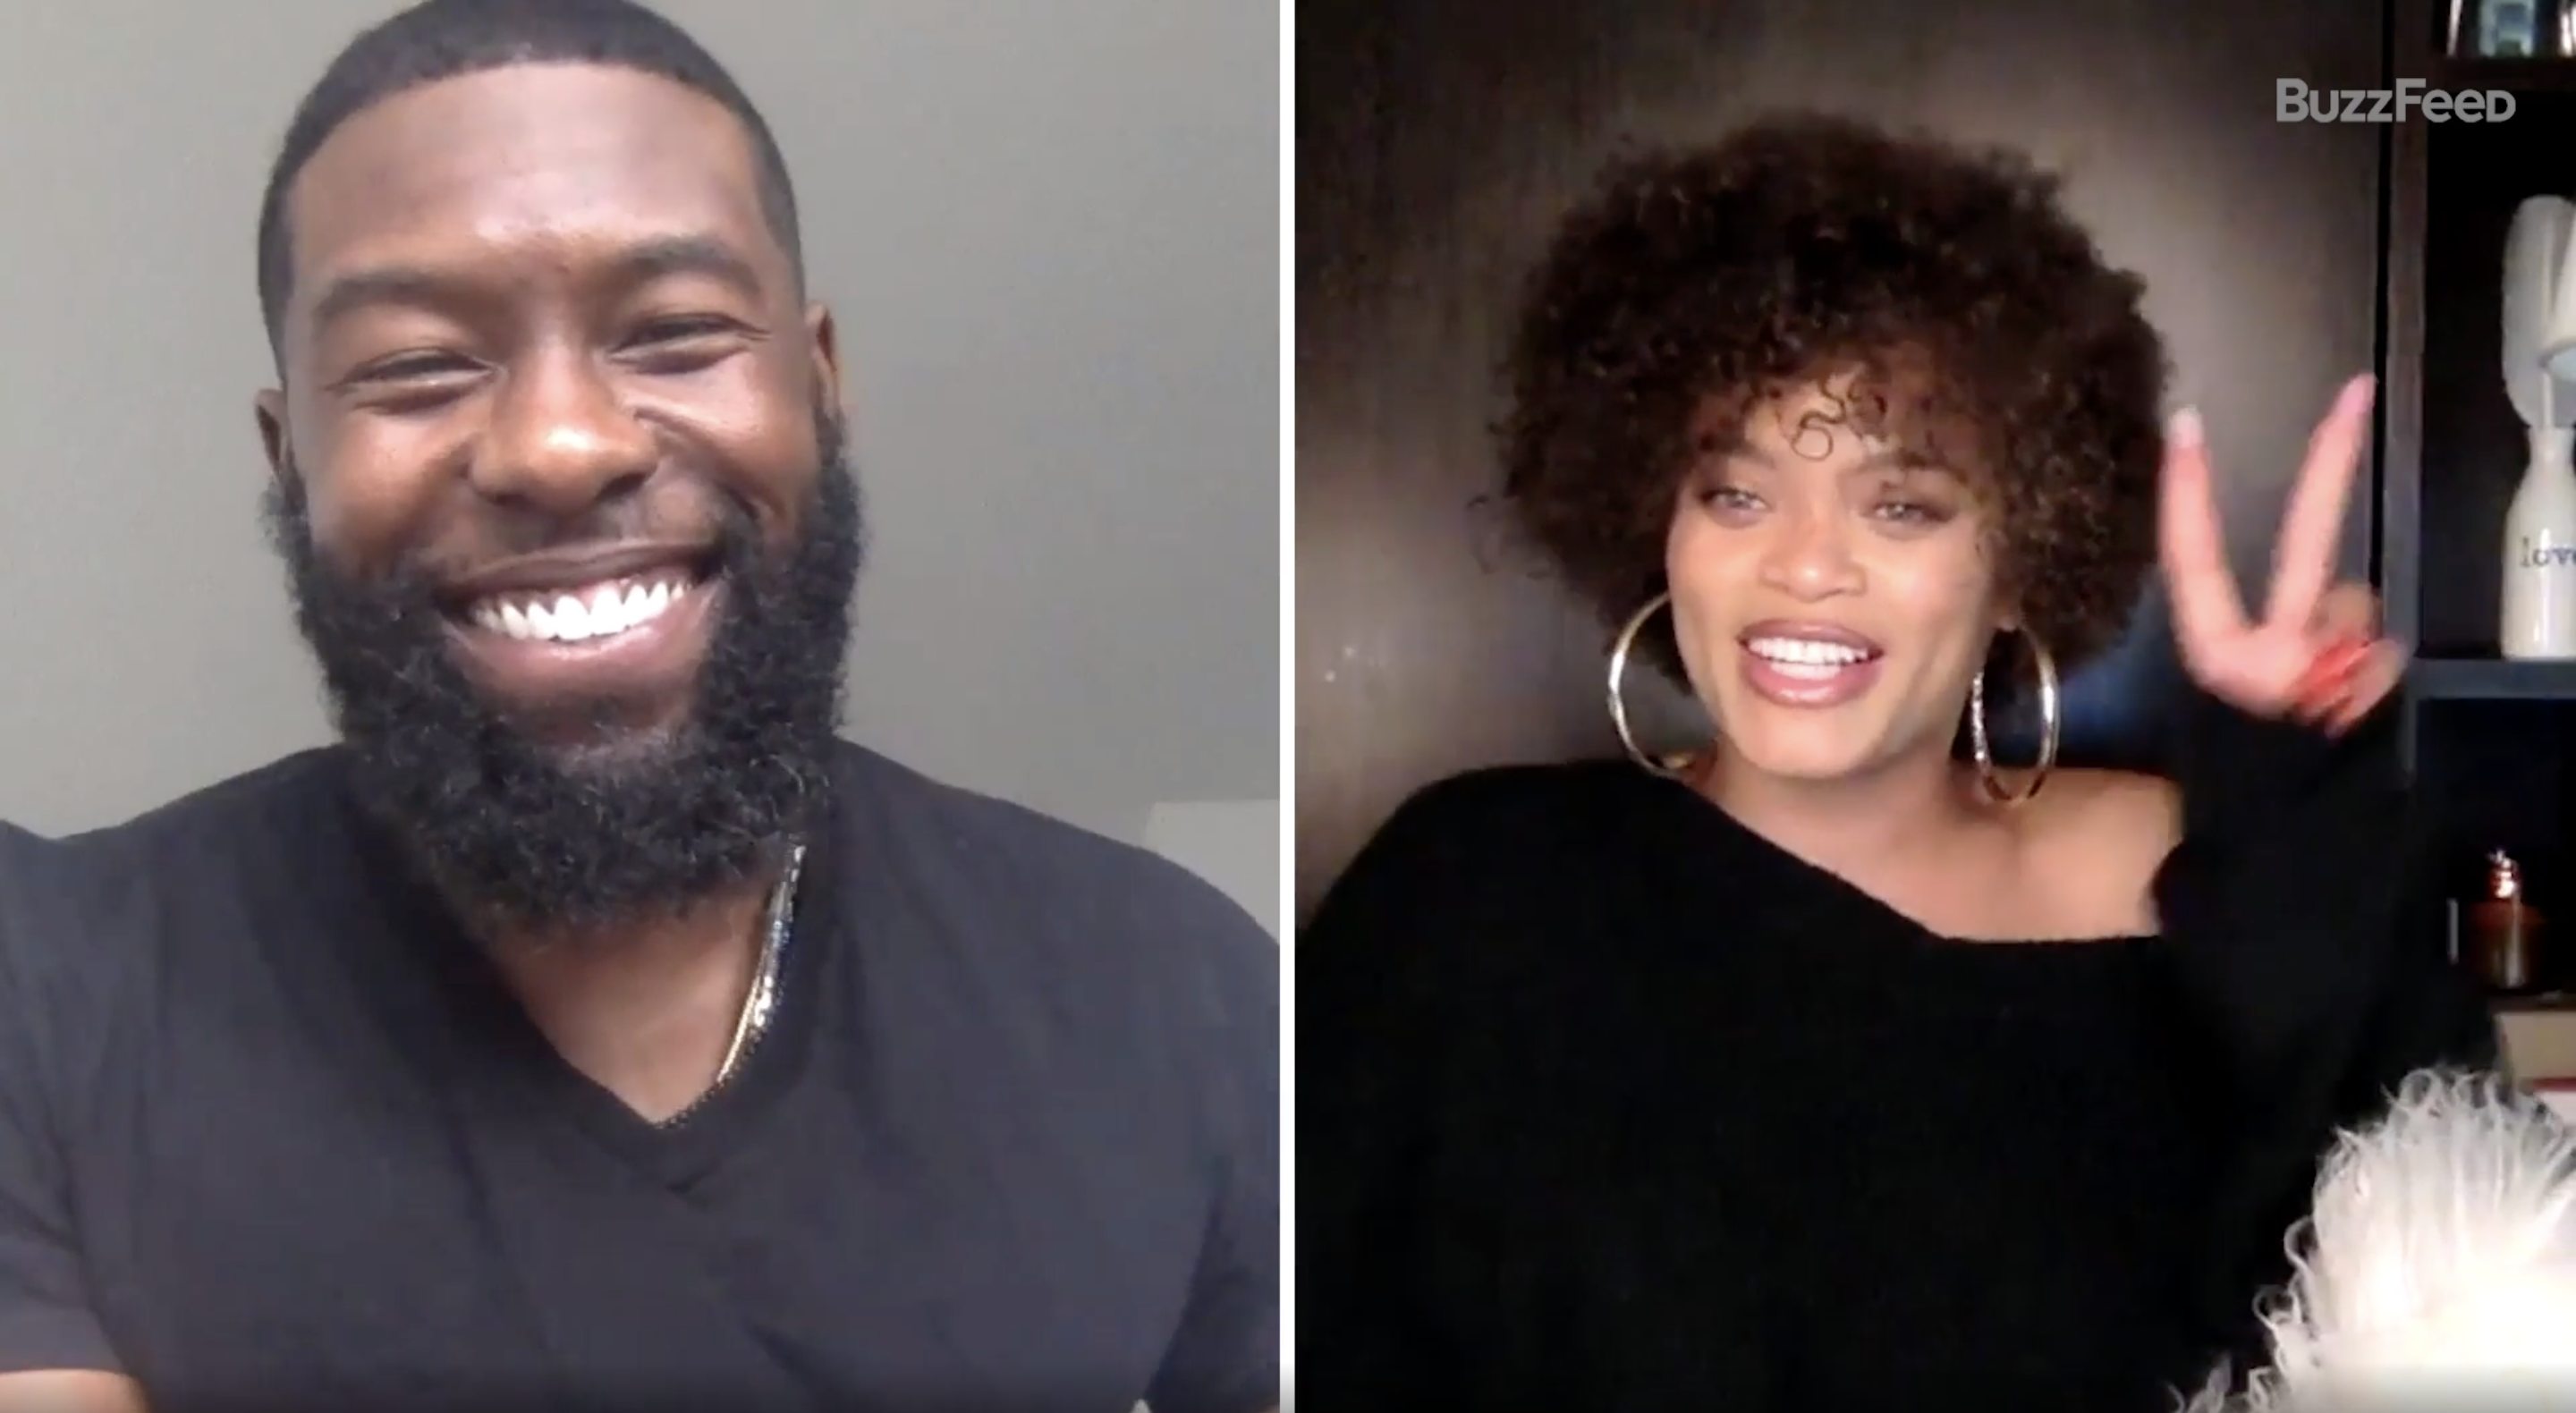 Trevante smiling and Andra giving the peace sign during their BuzzFeed interview